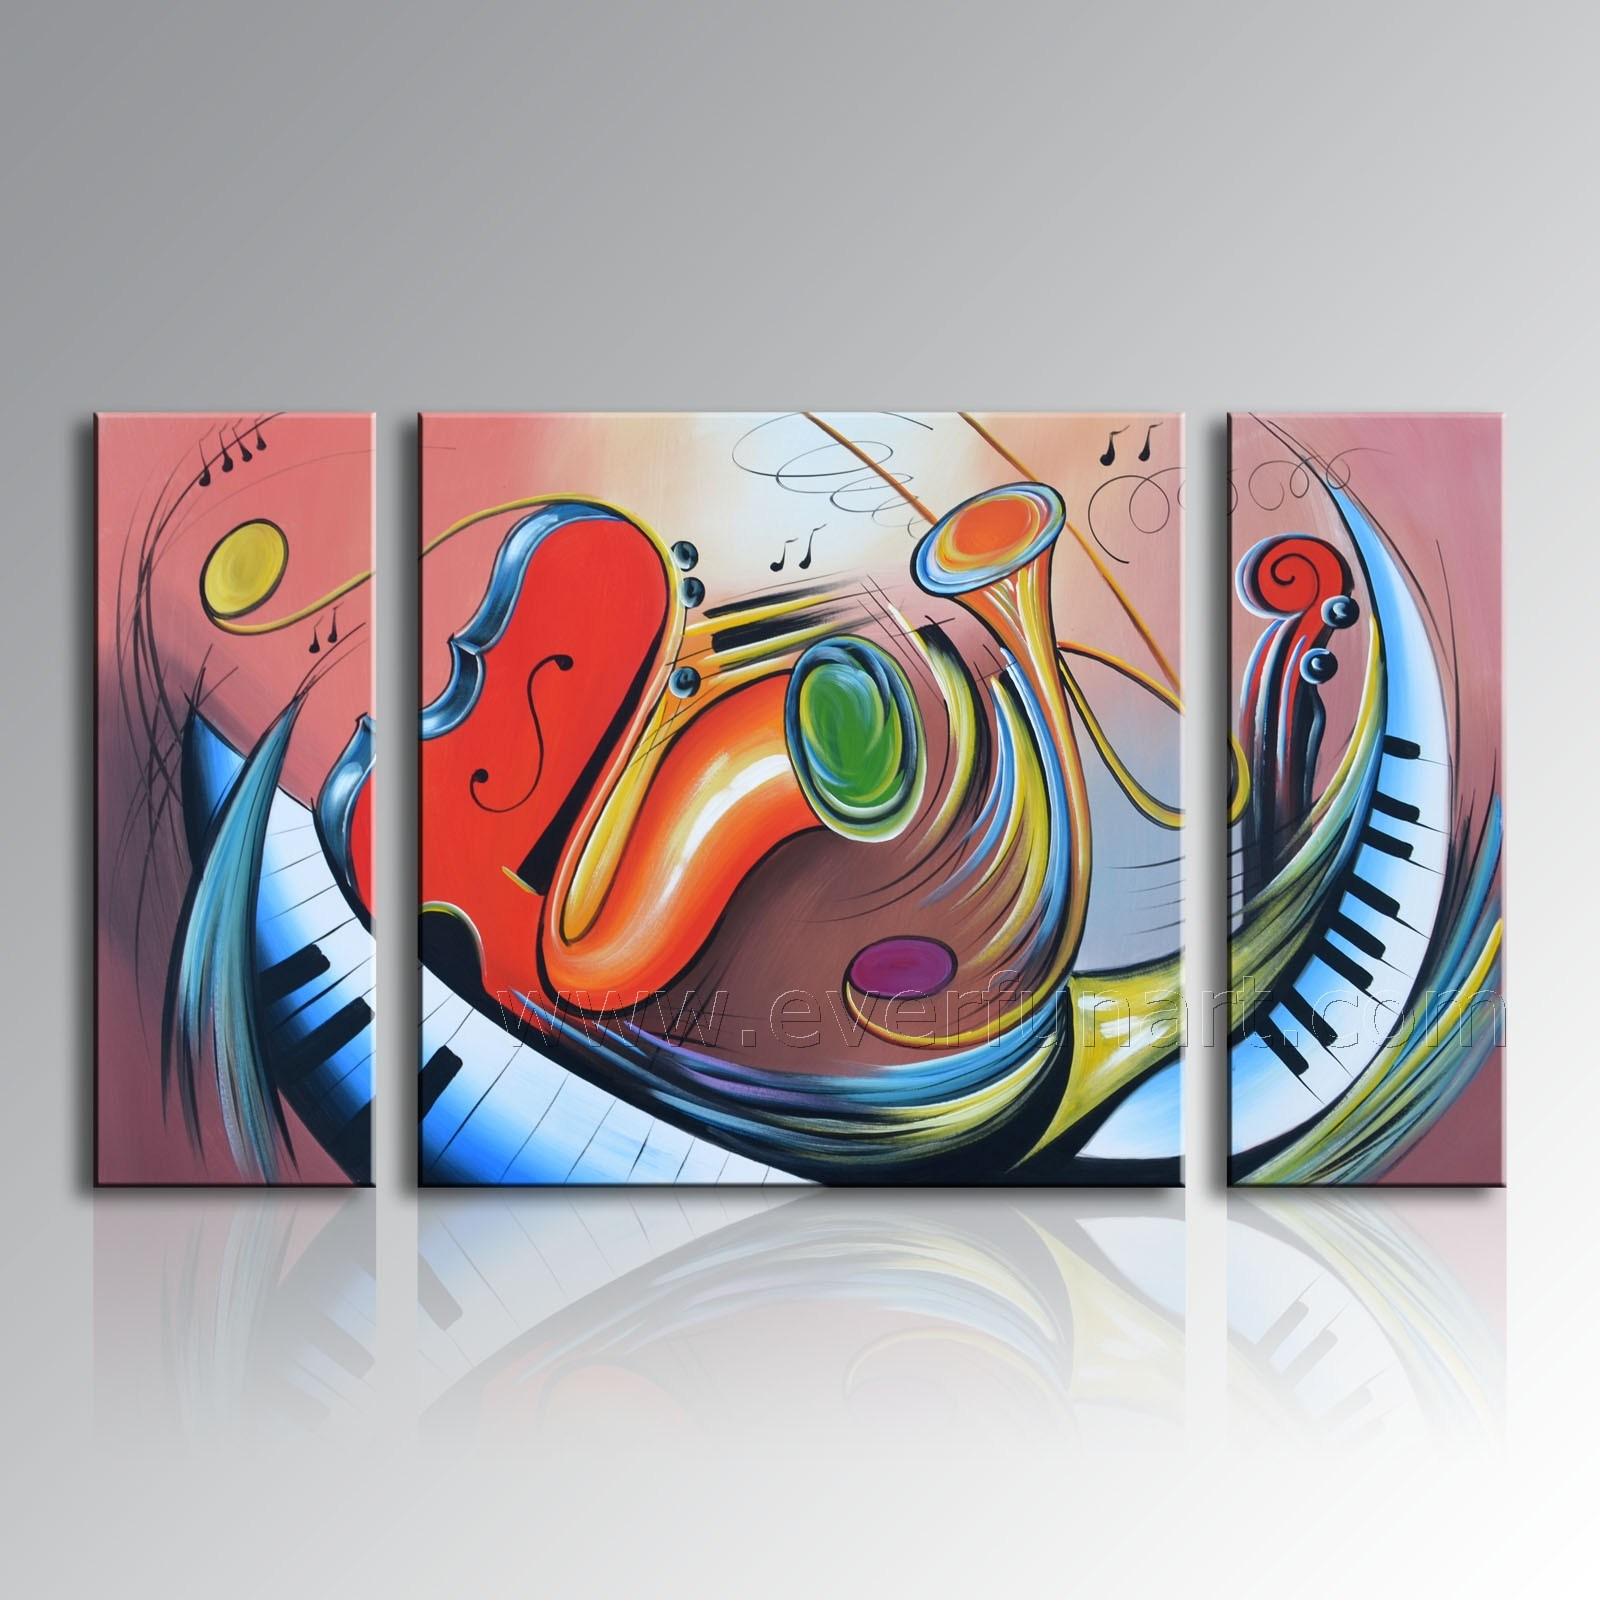 China 100 Handmade Modern Wall Decor Art Simple Abstract Painting XD3 197 Photos amp Pictures